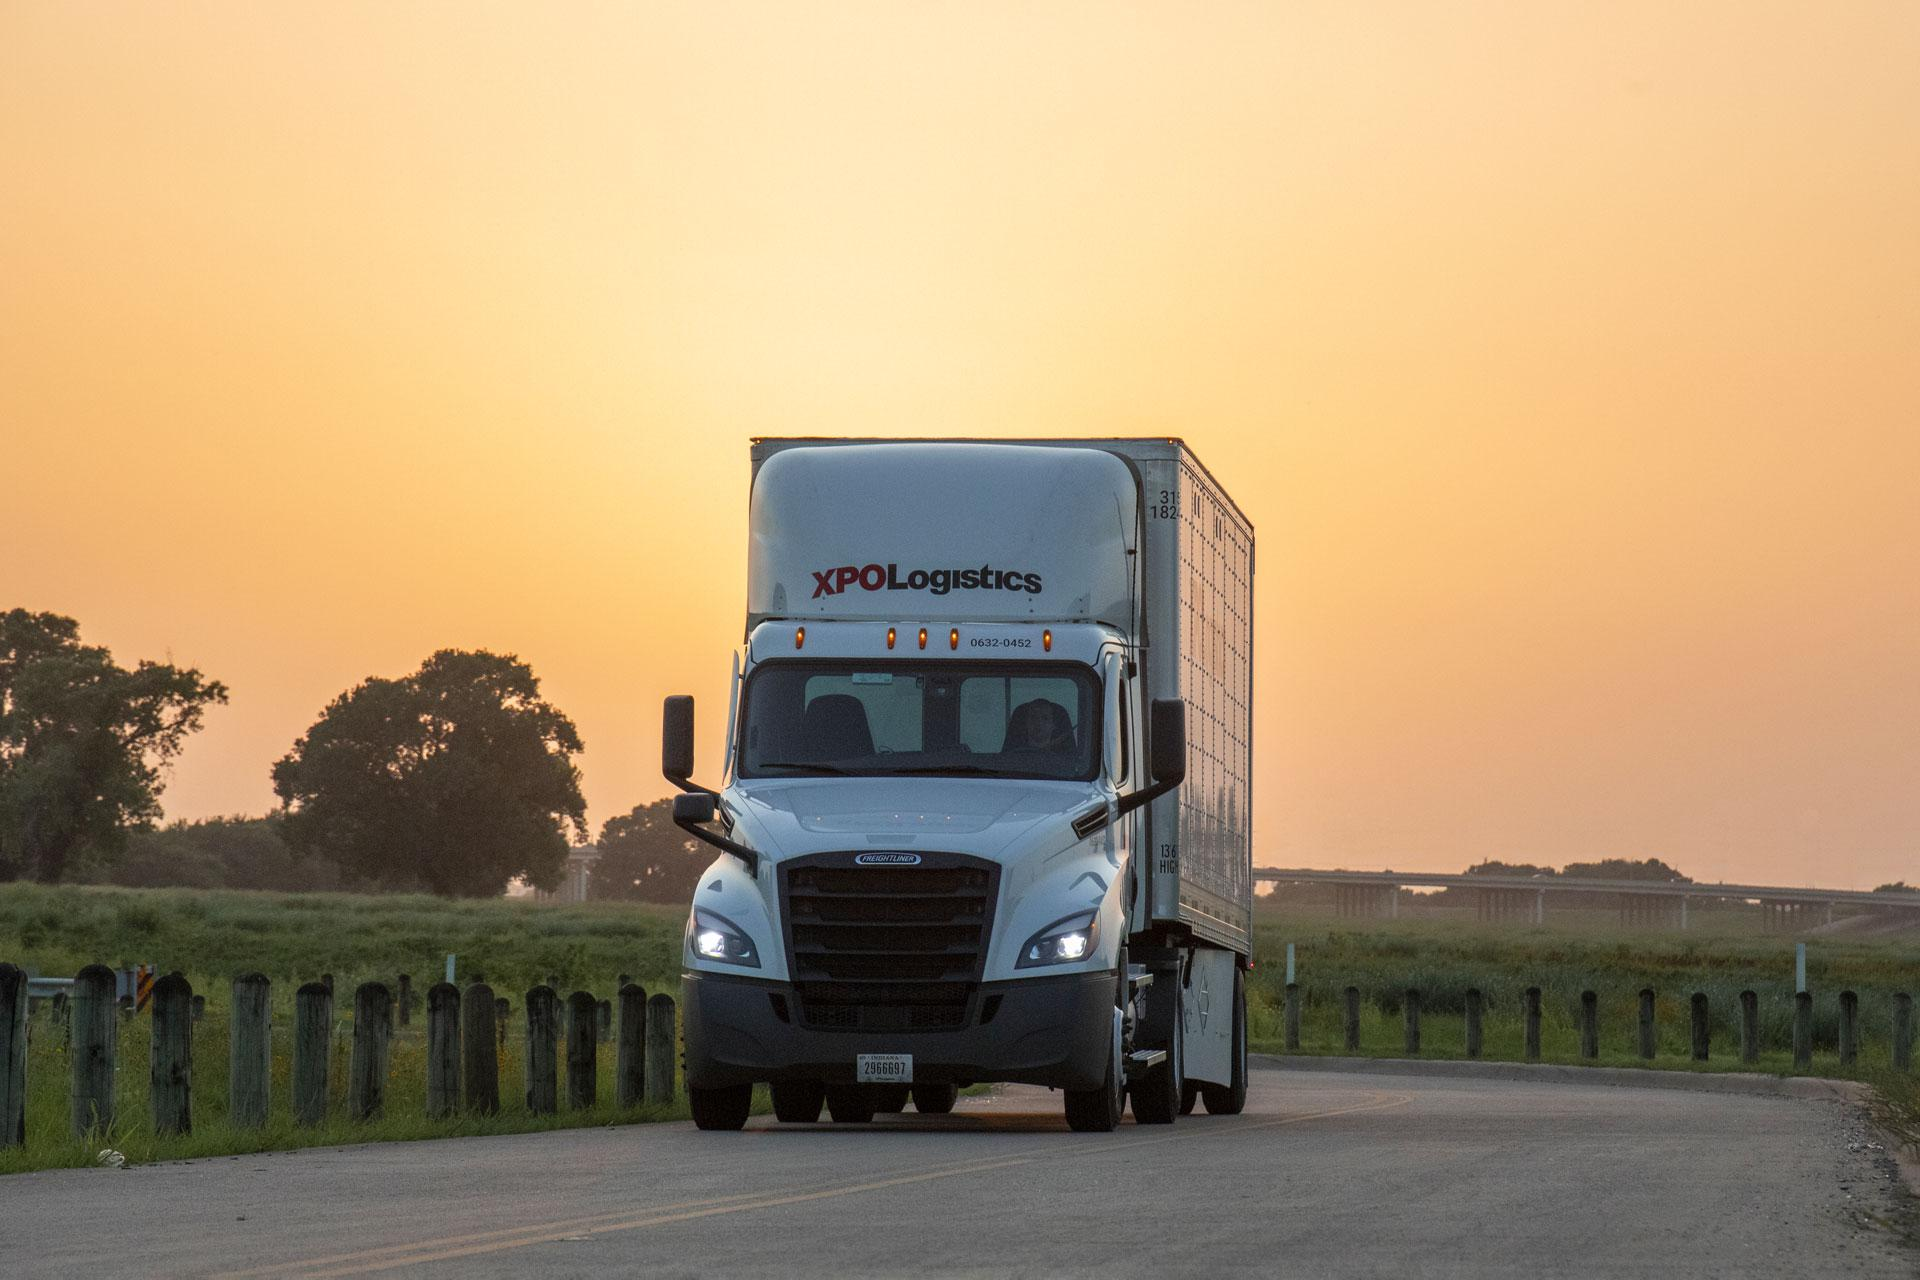 XPO truck on road during brilliant sunset